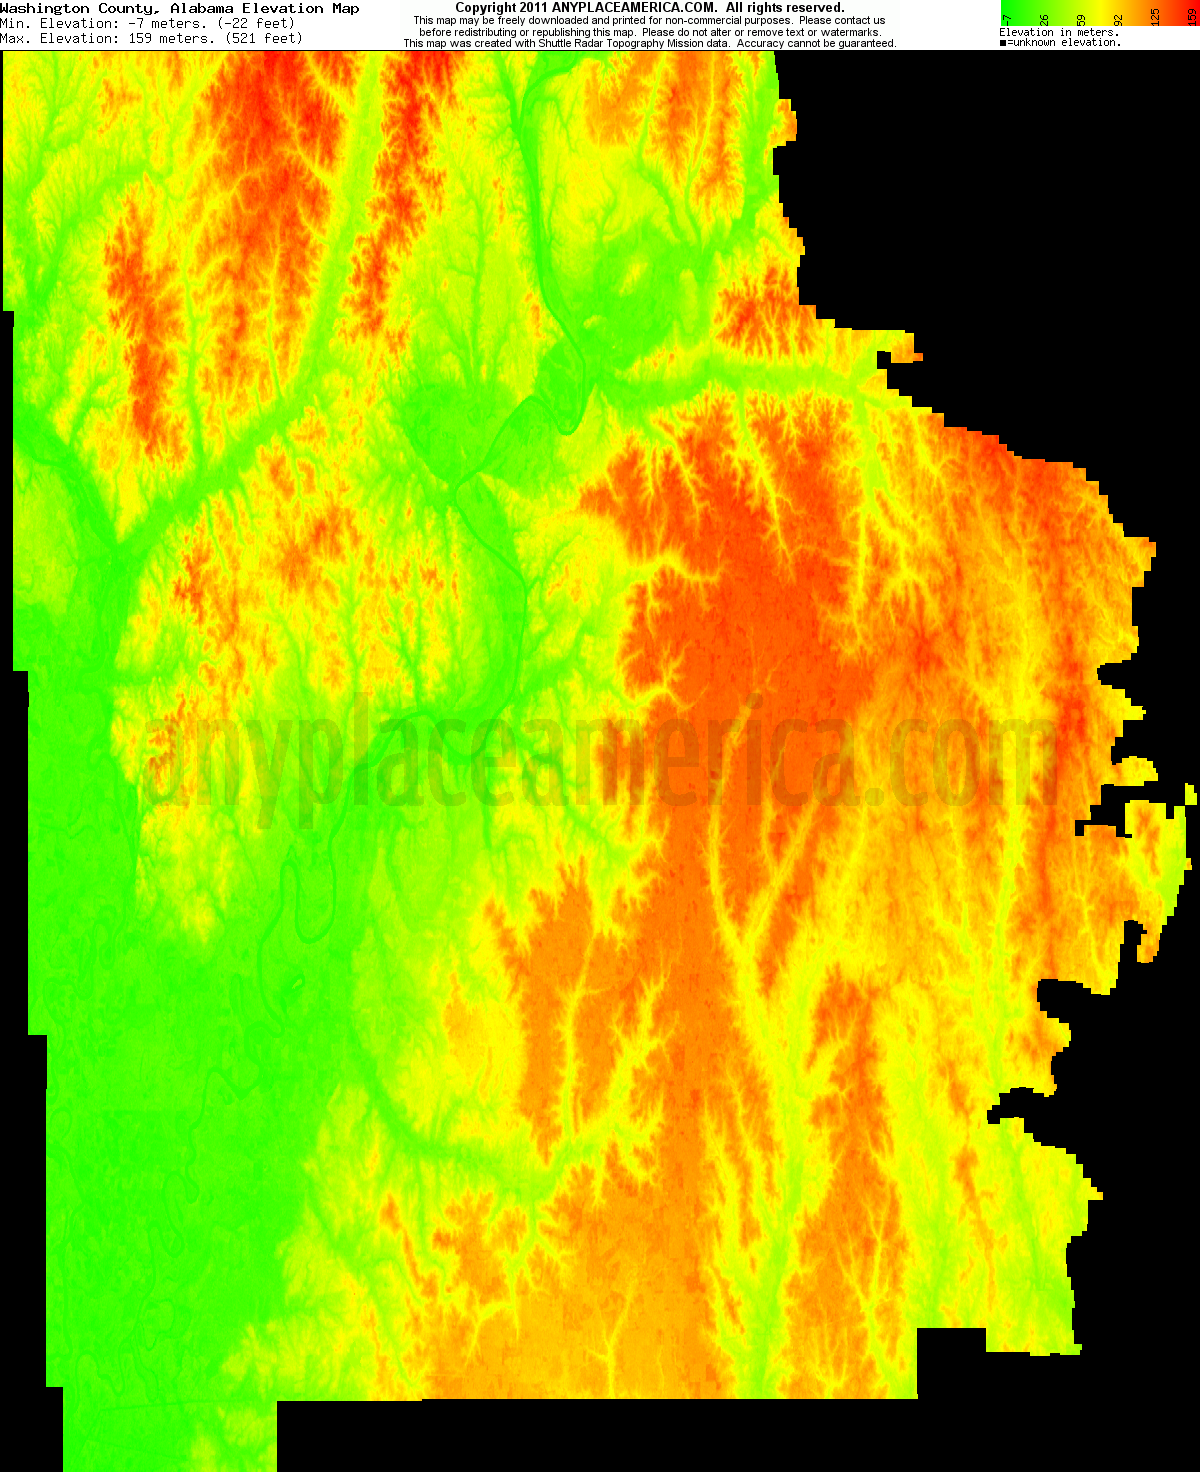 Alabama washington county wagarville - Download Washington County Elevation Map